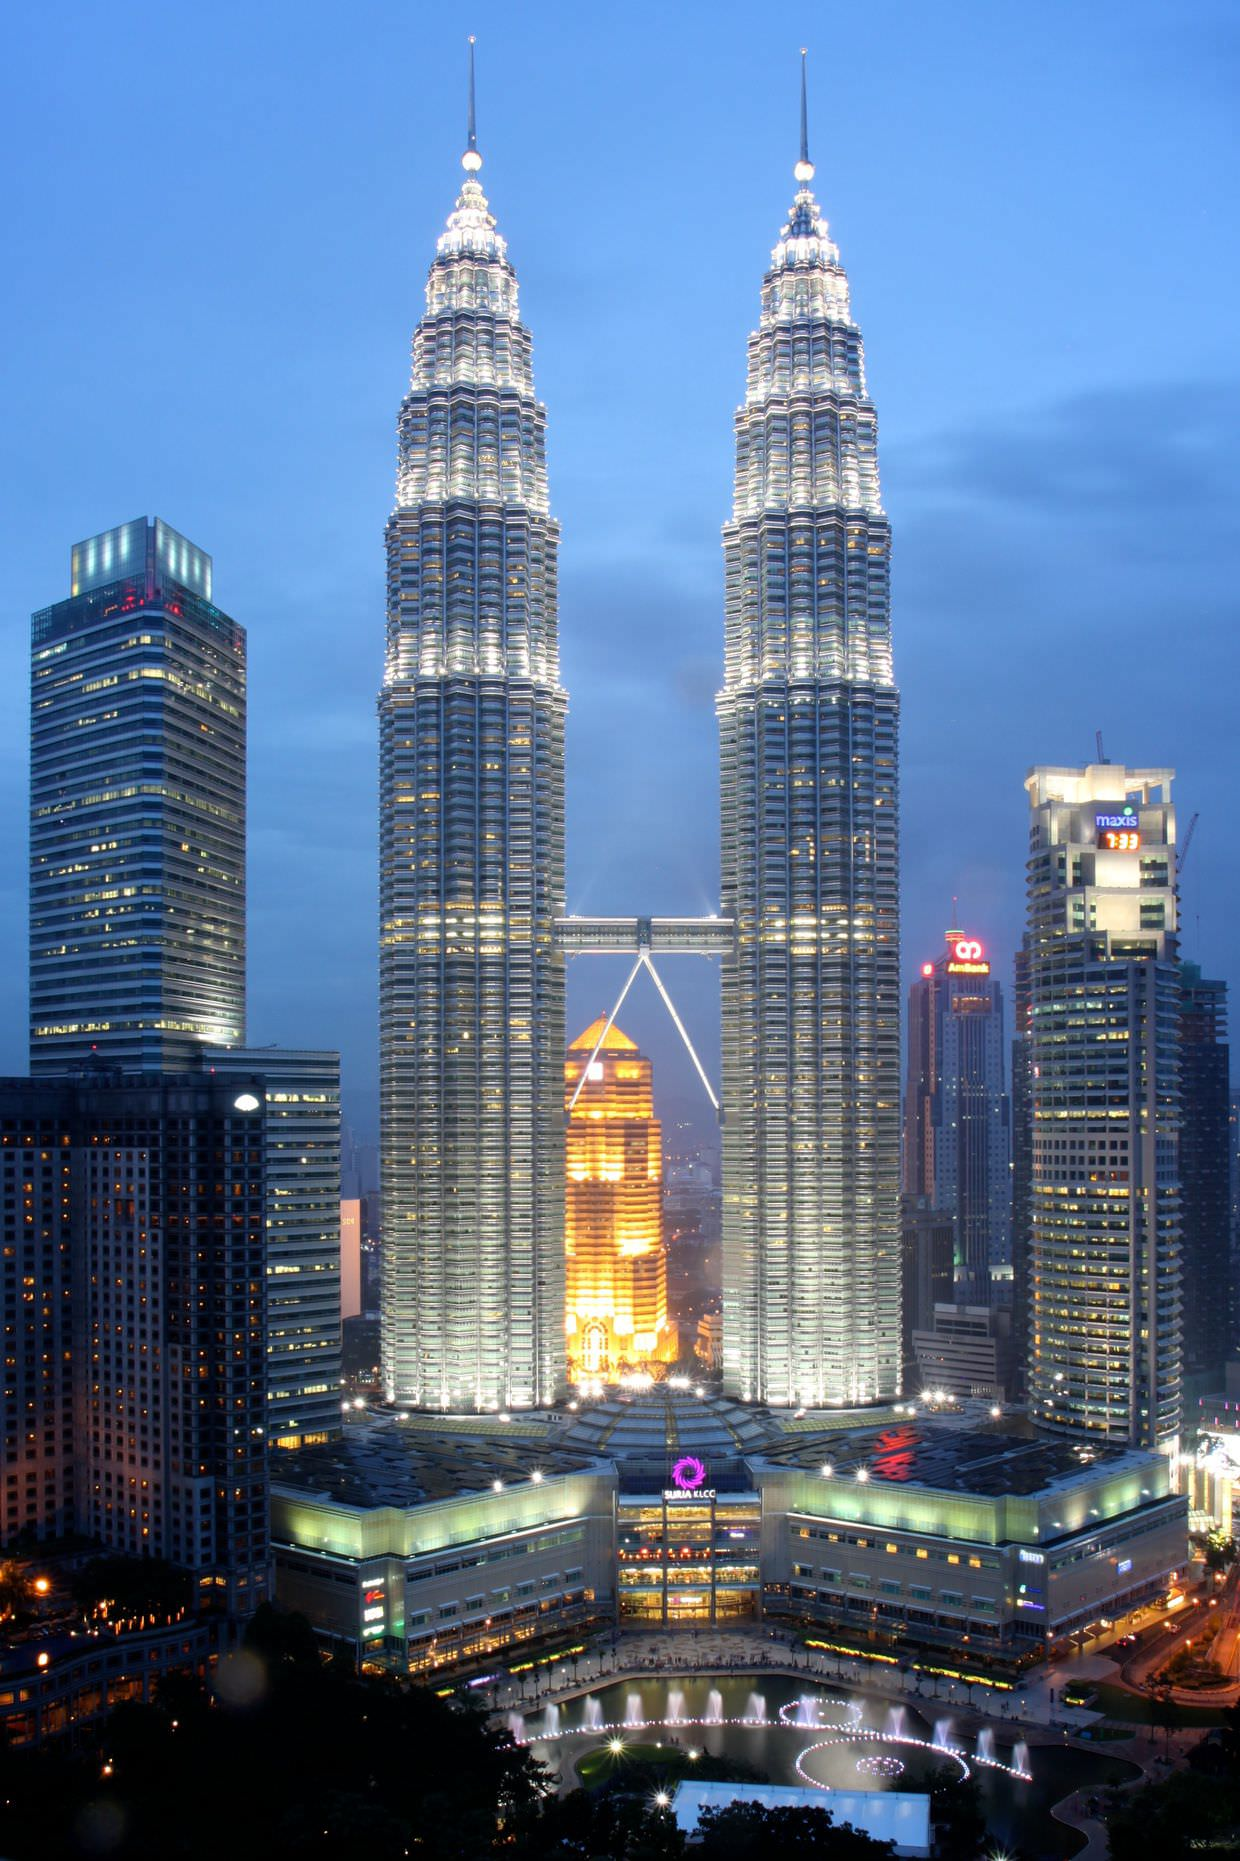 View of the Petronas Towers from Traders hotel